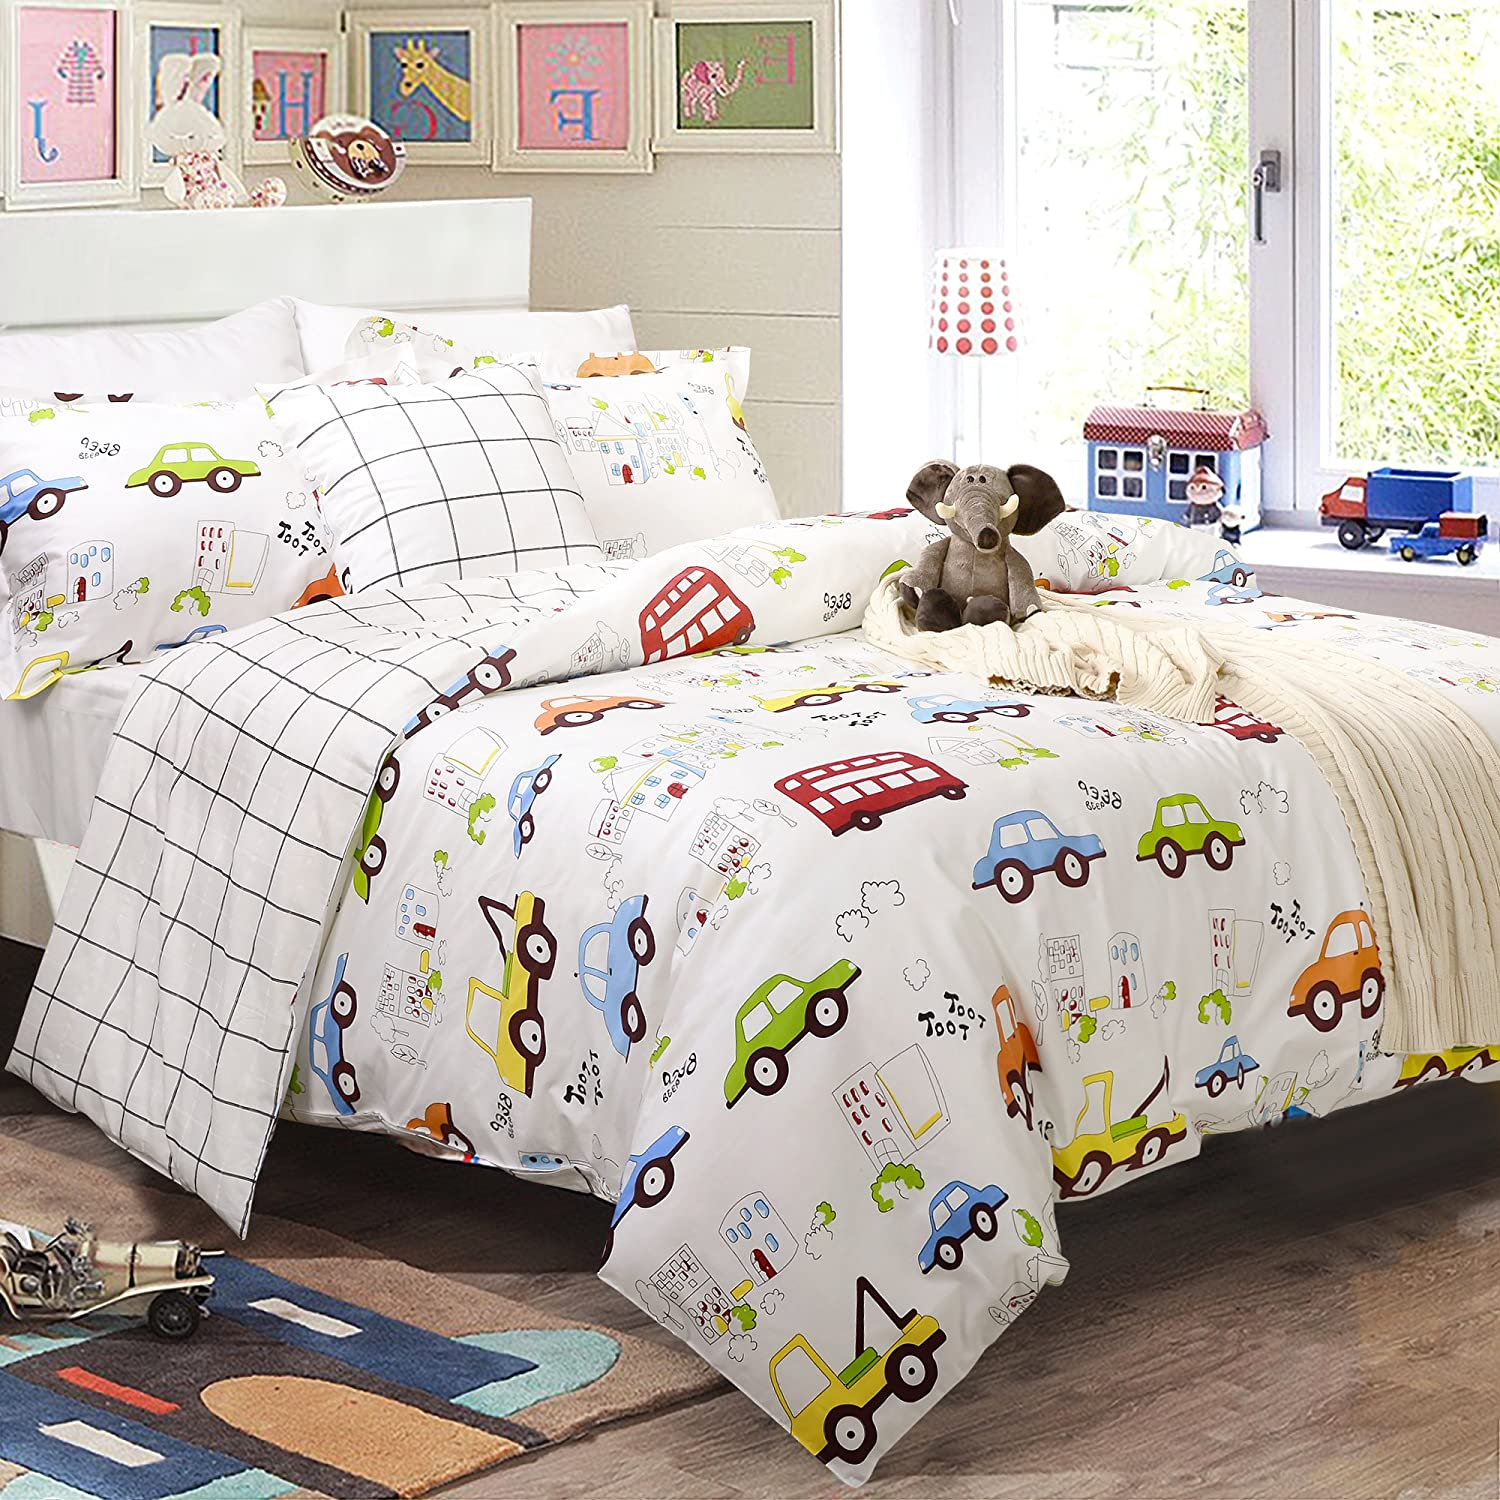 Amazon.com: Boys Bedding Sets Cars Bedding 100% Cotton Duvet Covers Set  3 Piece Queen Size (No Comforter Included): Home U0026 Kitchen